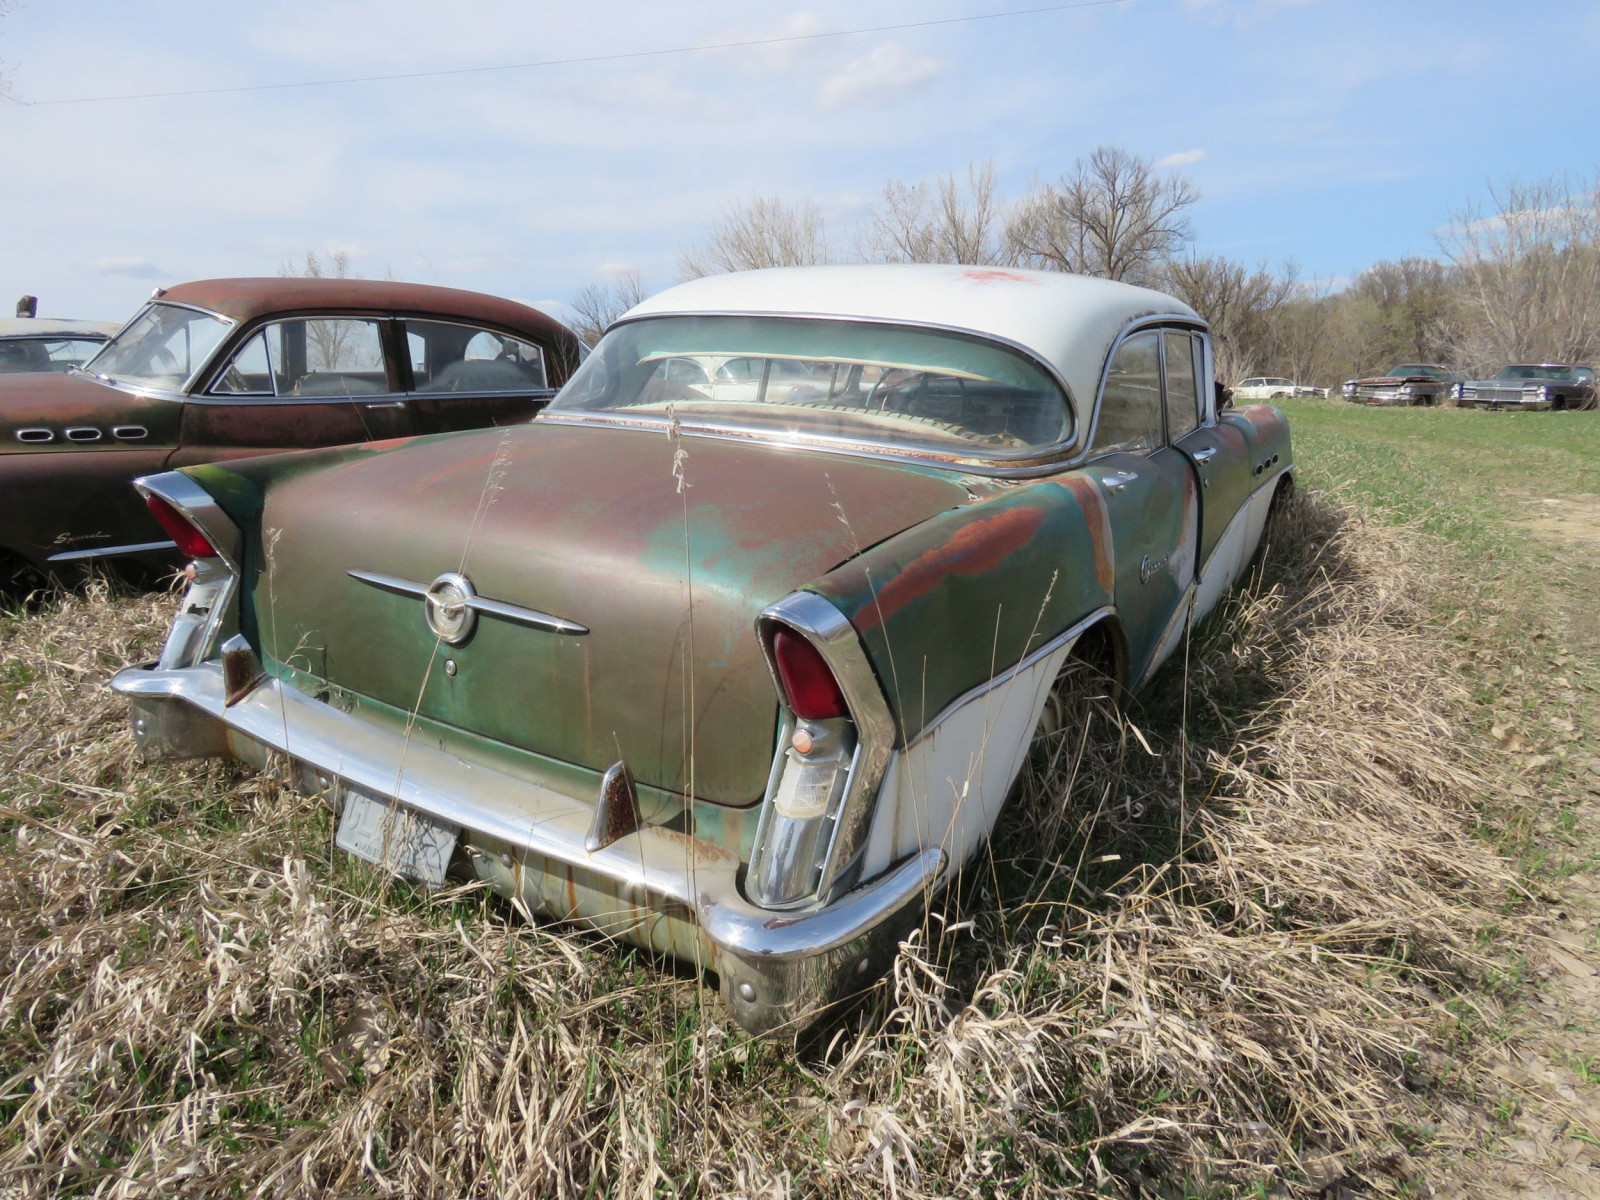 1956 Buick Special 4dr Hit 4C4046544 - Image 4